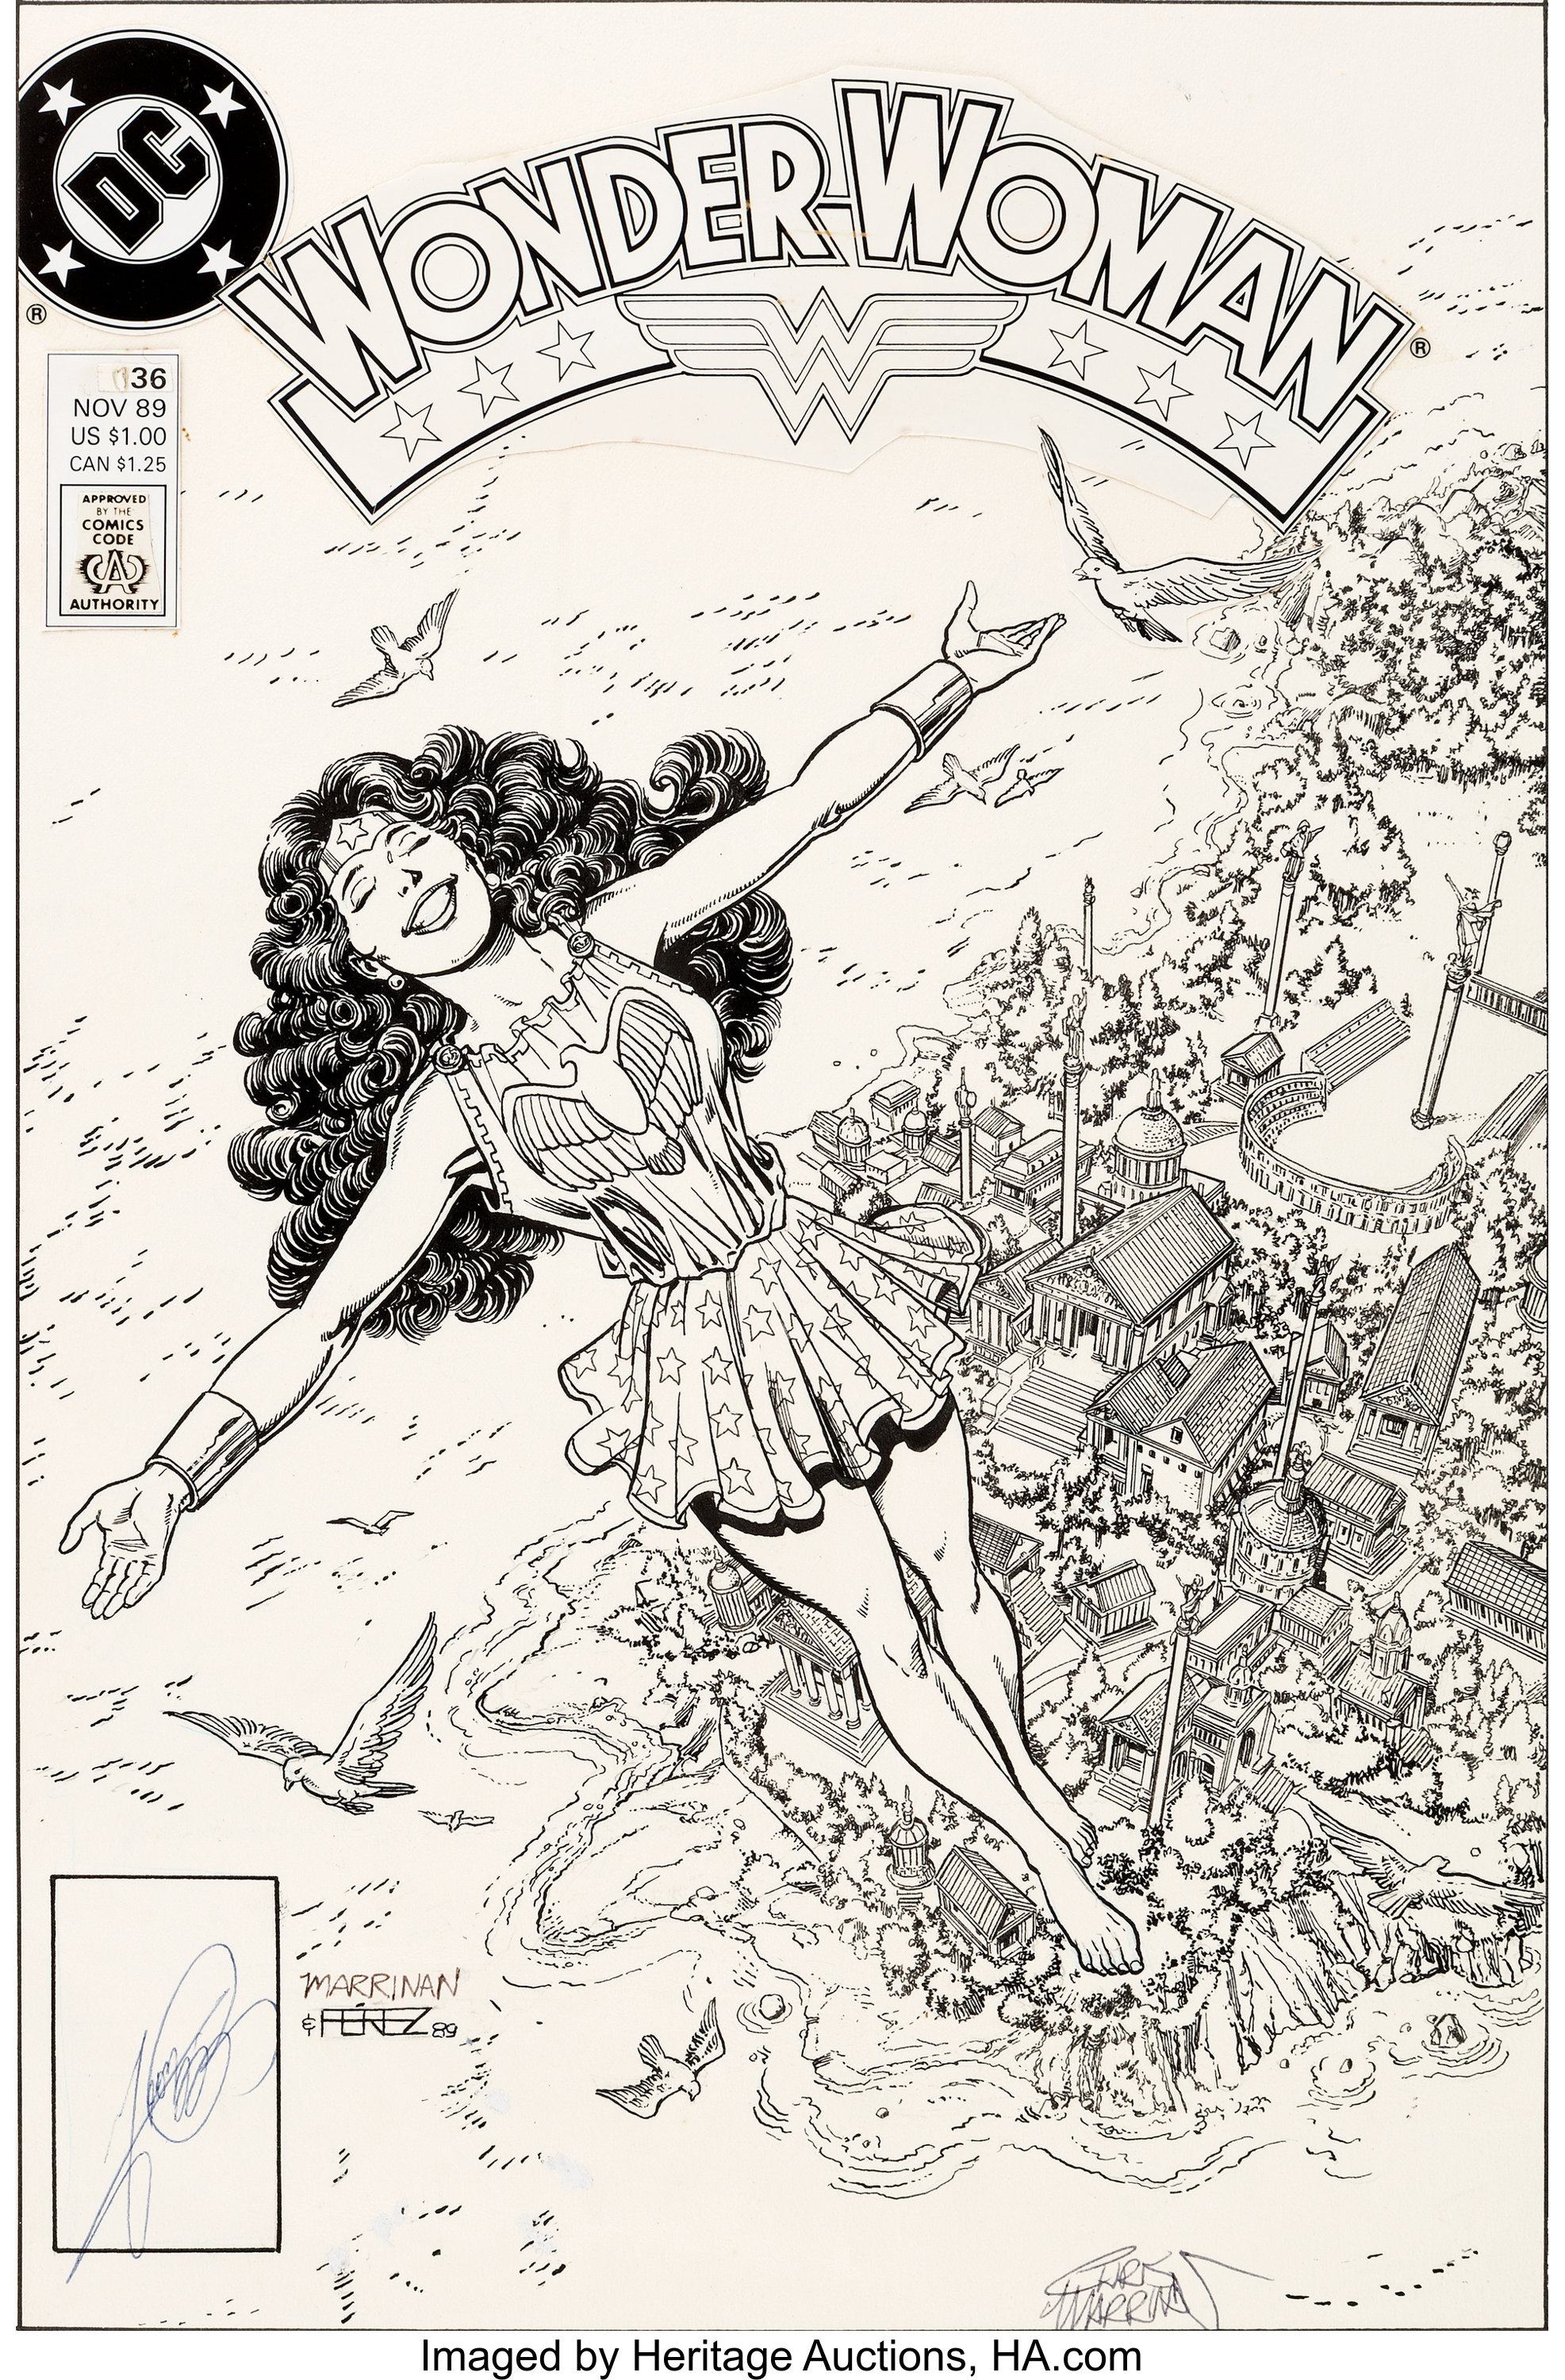 Original cover art by George Perez from Wonder Woman #36, 1989